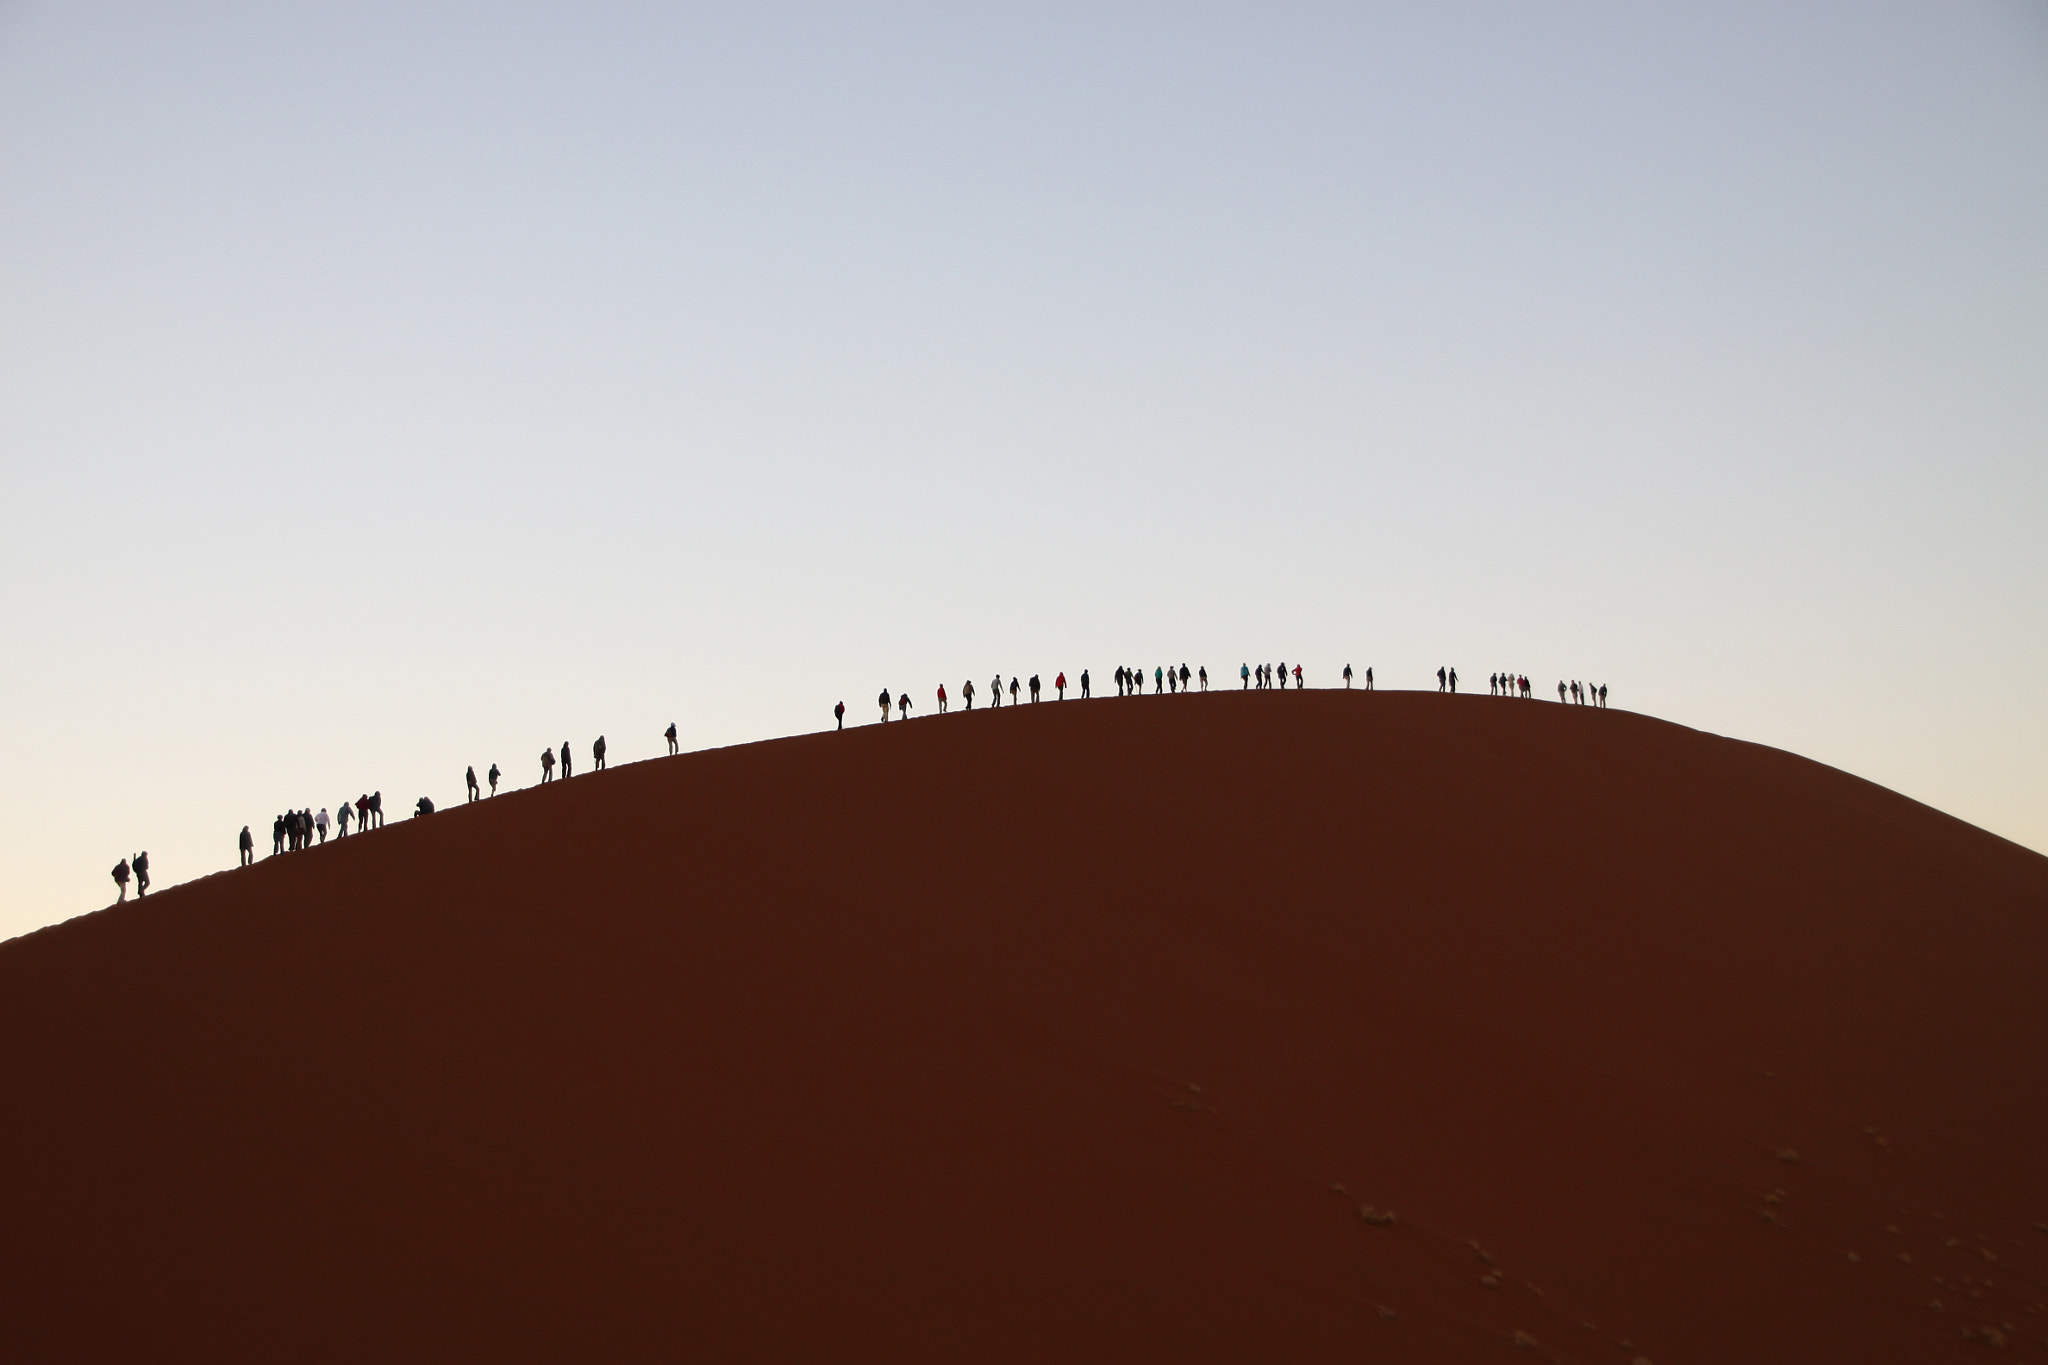 Photograph Walking on dunes by Christian Wagner on 500px